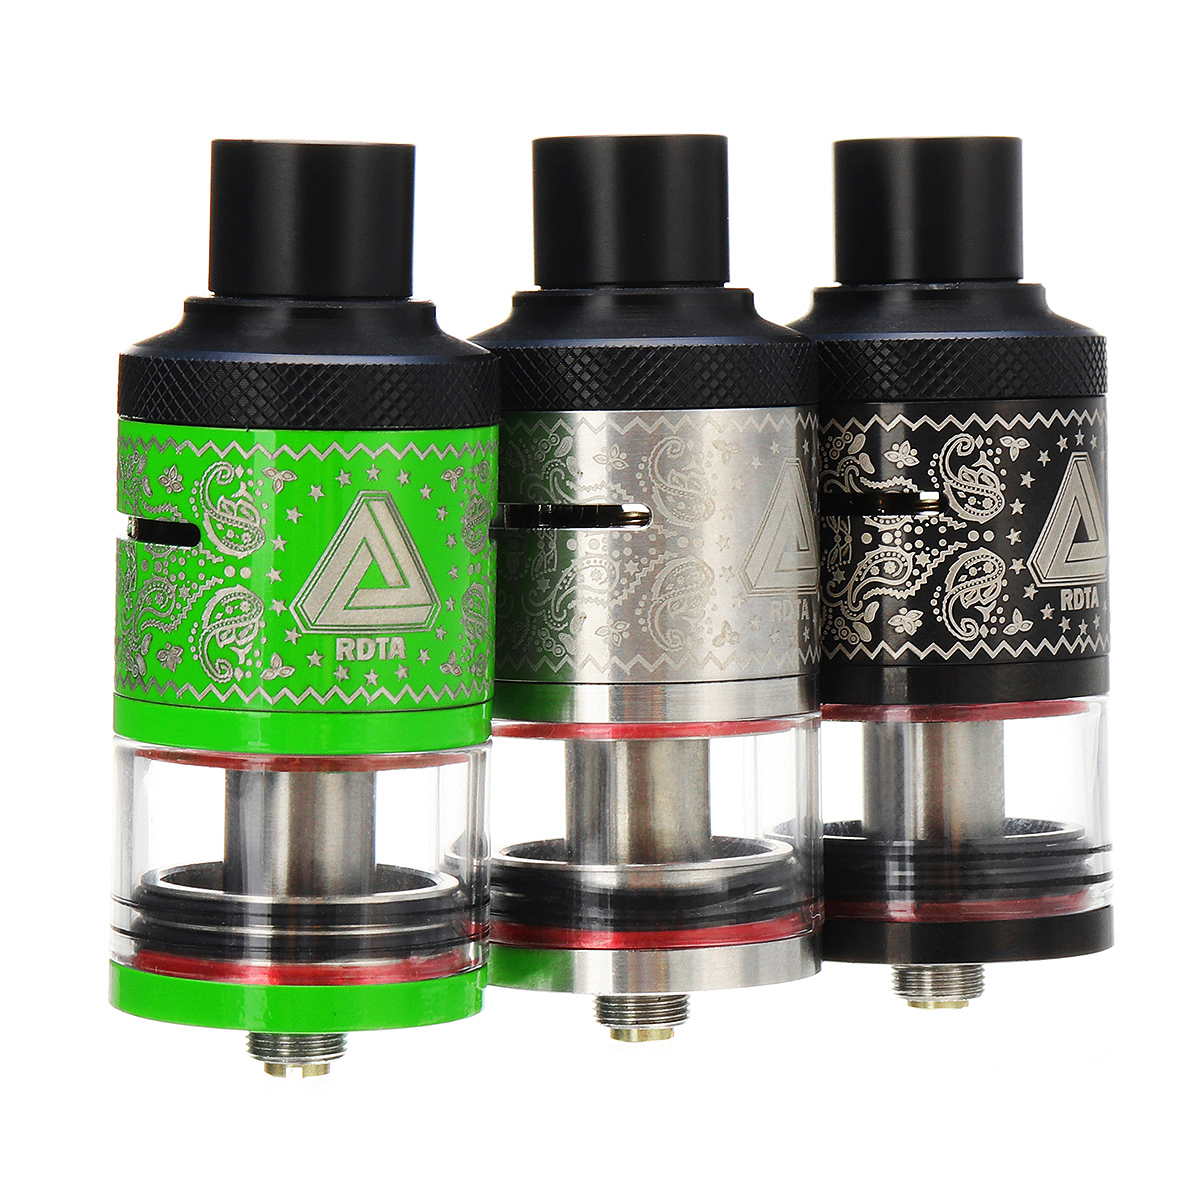 6.3ml RDTA Plus Tank Kit Electronic Cigarette Atomizer